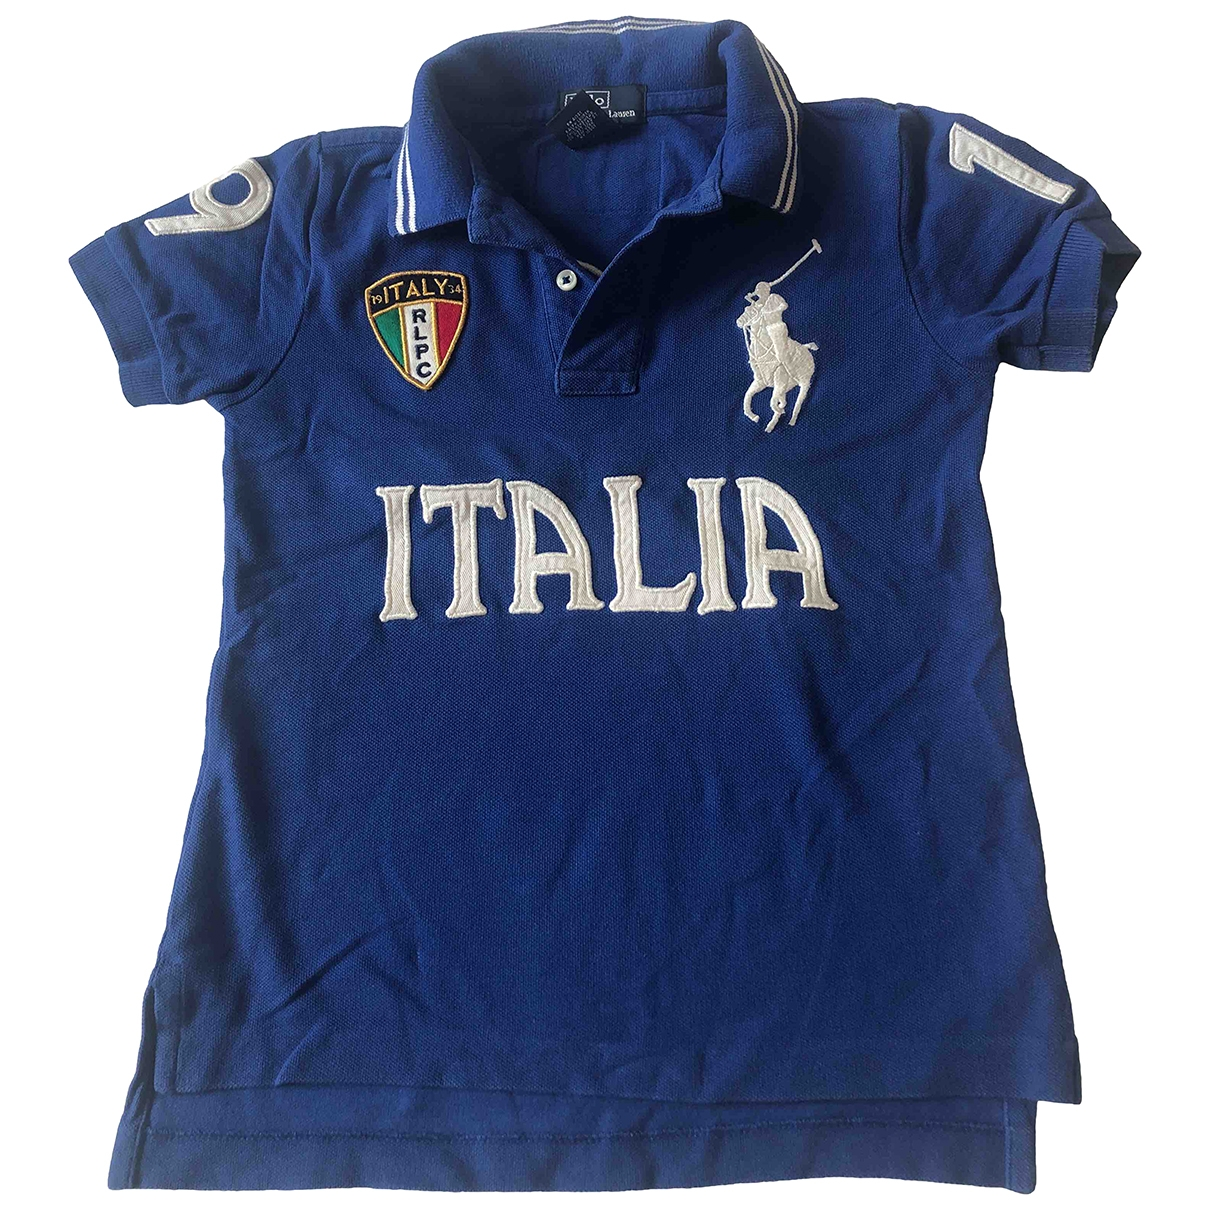 Polo Ralph Lauren \N Blue Cotton  top for Kids 4 years - up to 102cm FR